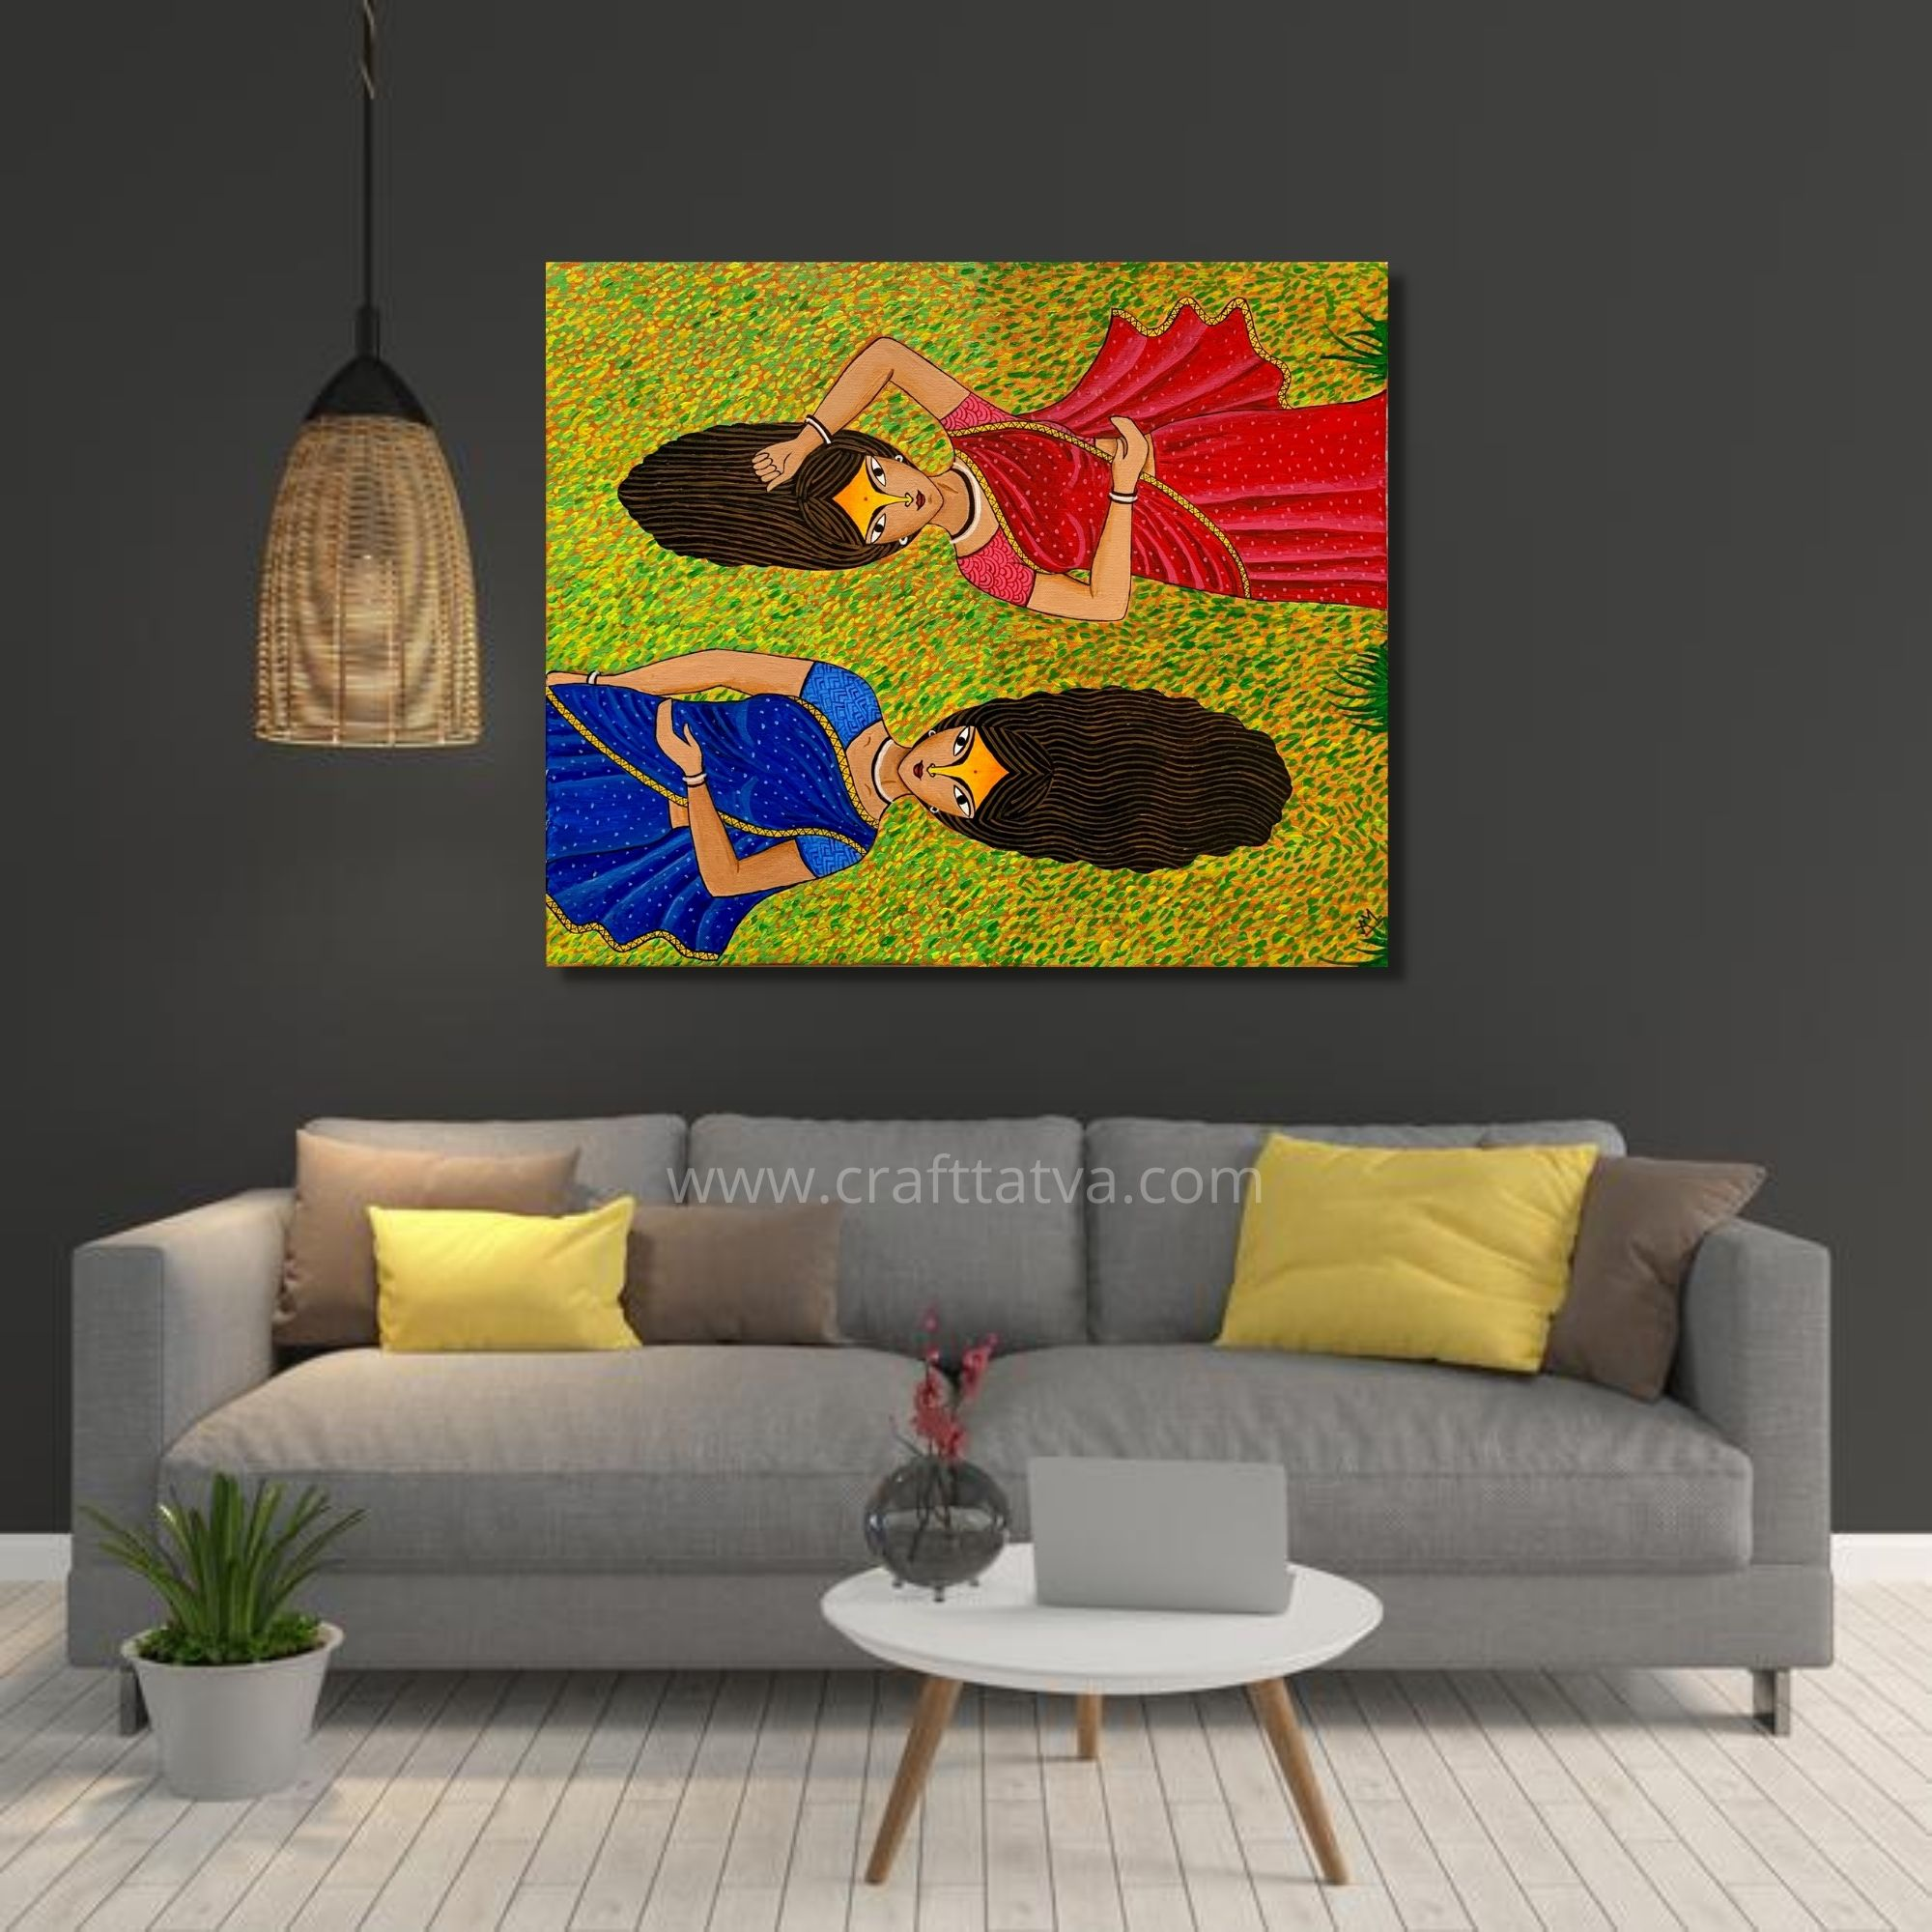 Indian Village women on grass_16x20inch_Acrylic on Canvas